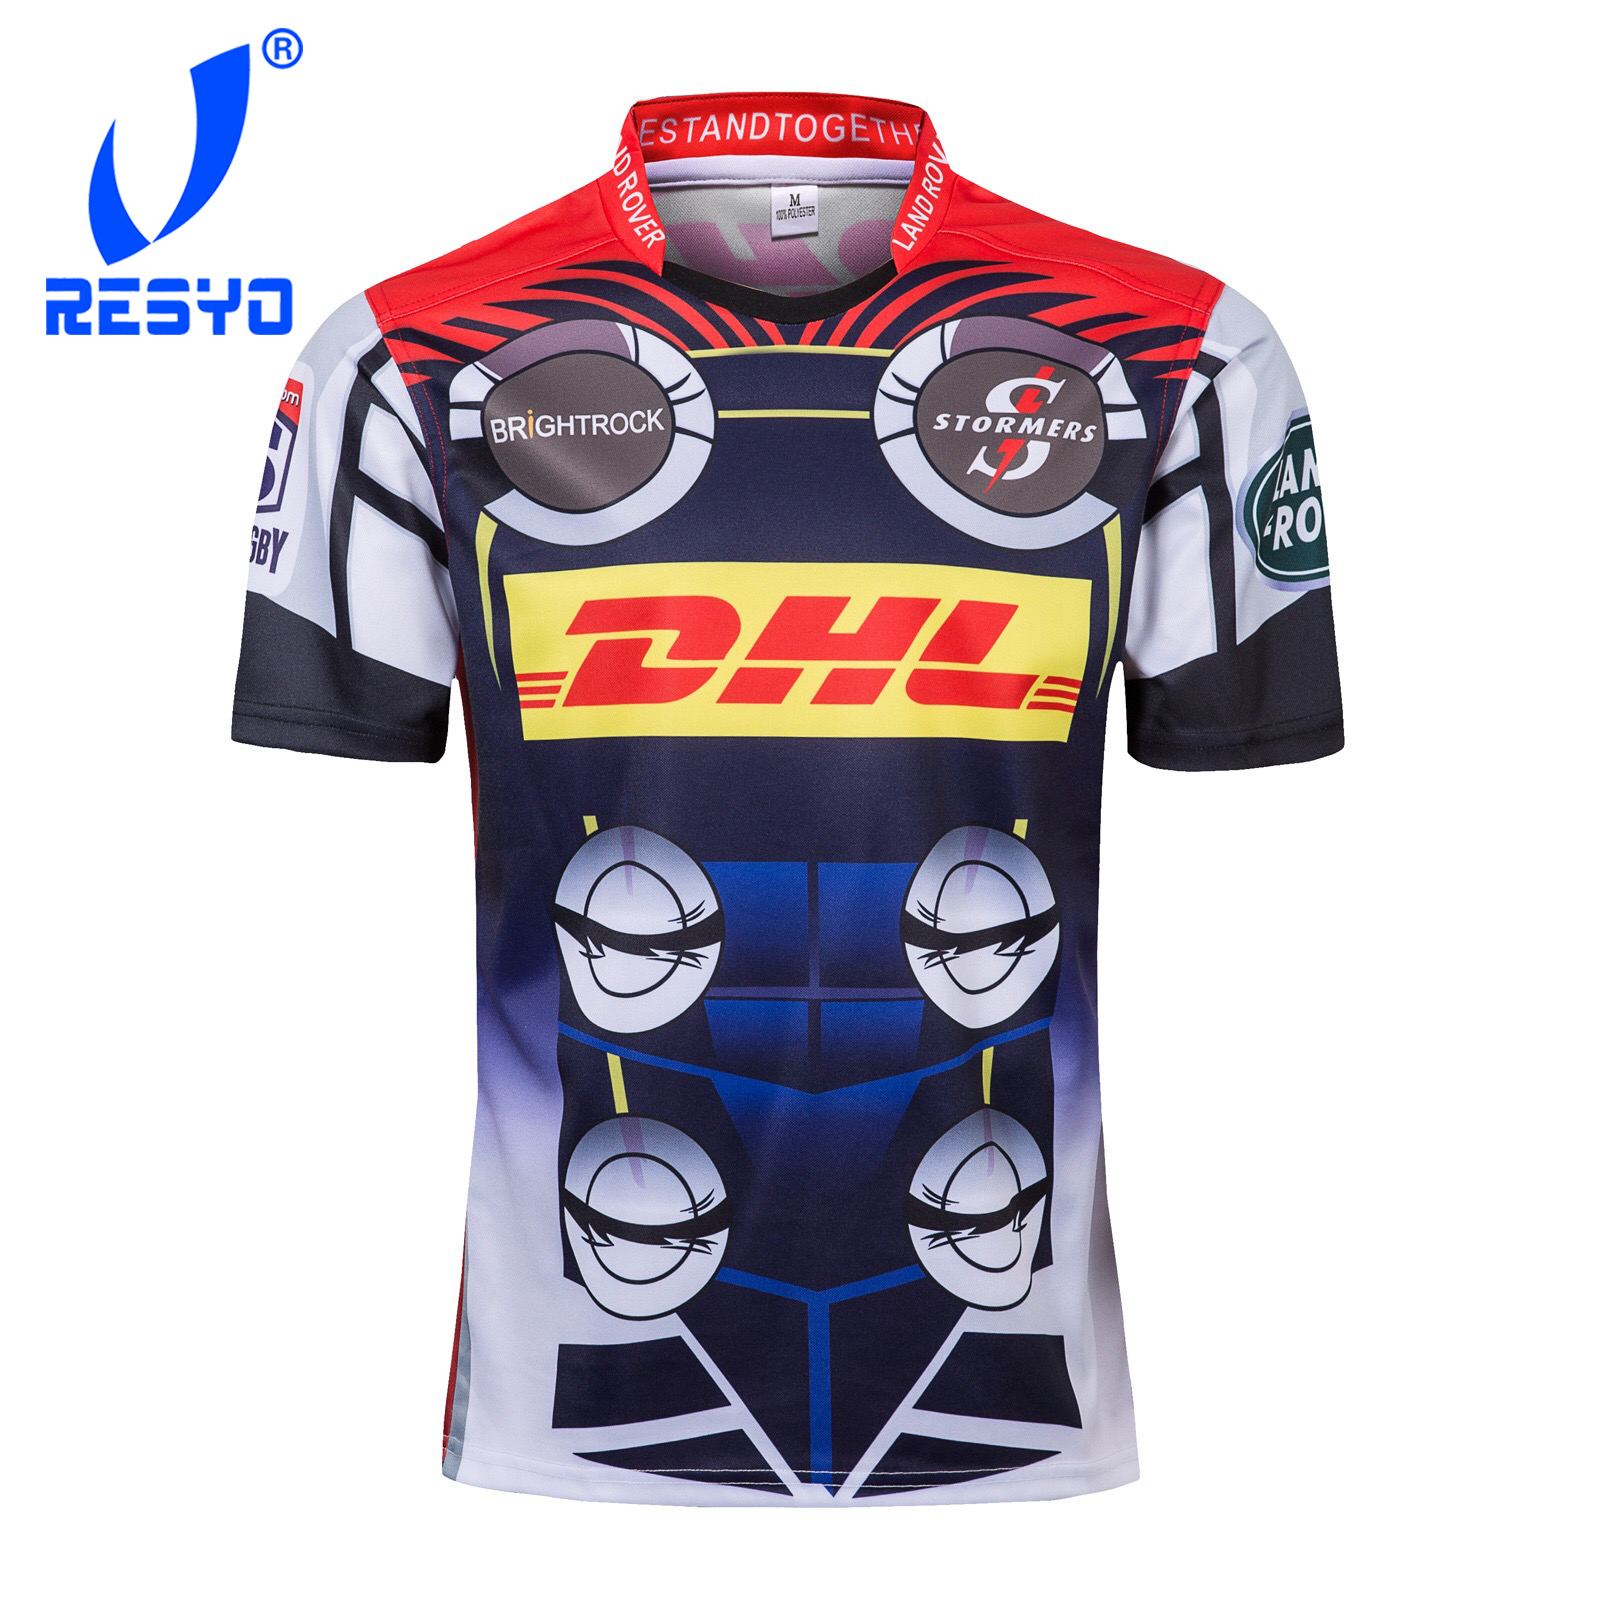 RESYO For 2019 Super Rugby XV DHL Stomers Heroes Version Men's RUGBY JERSEY  Sport Shirt Size:S-3XL Free Shipping